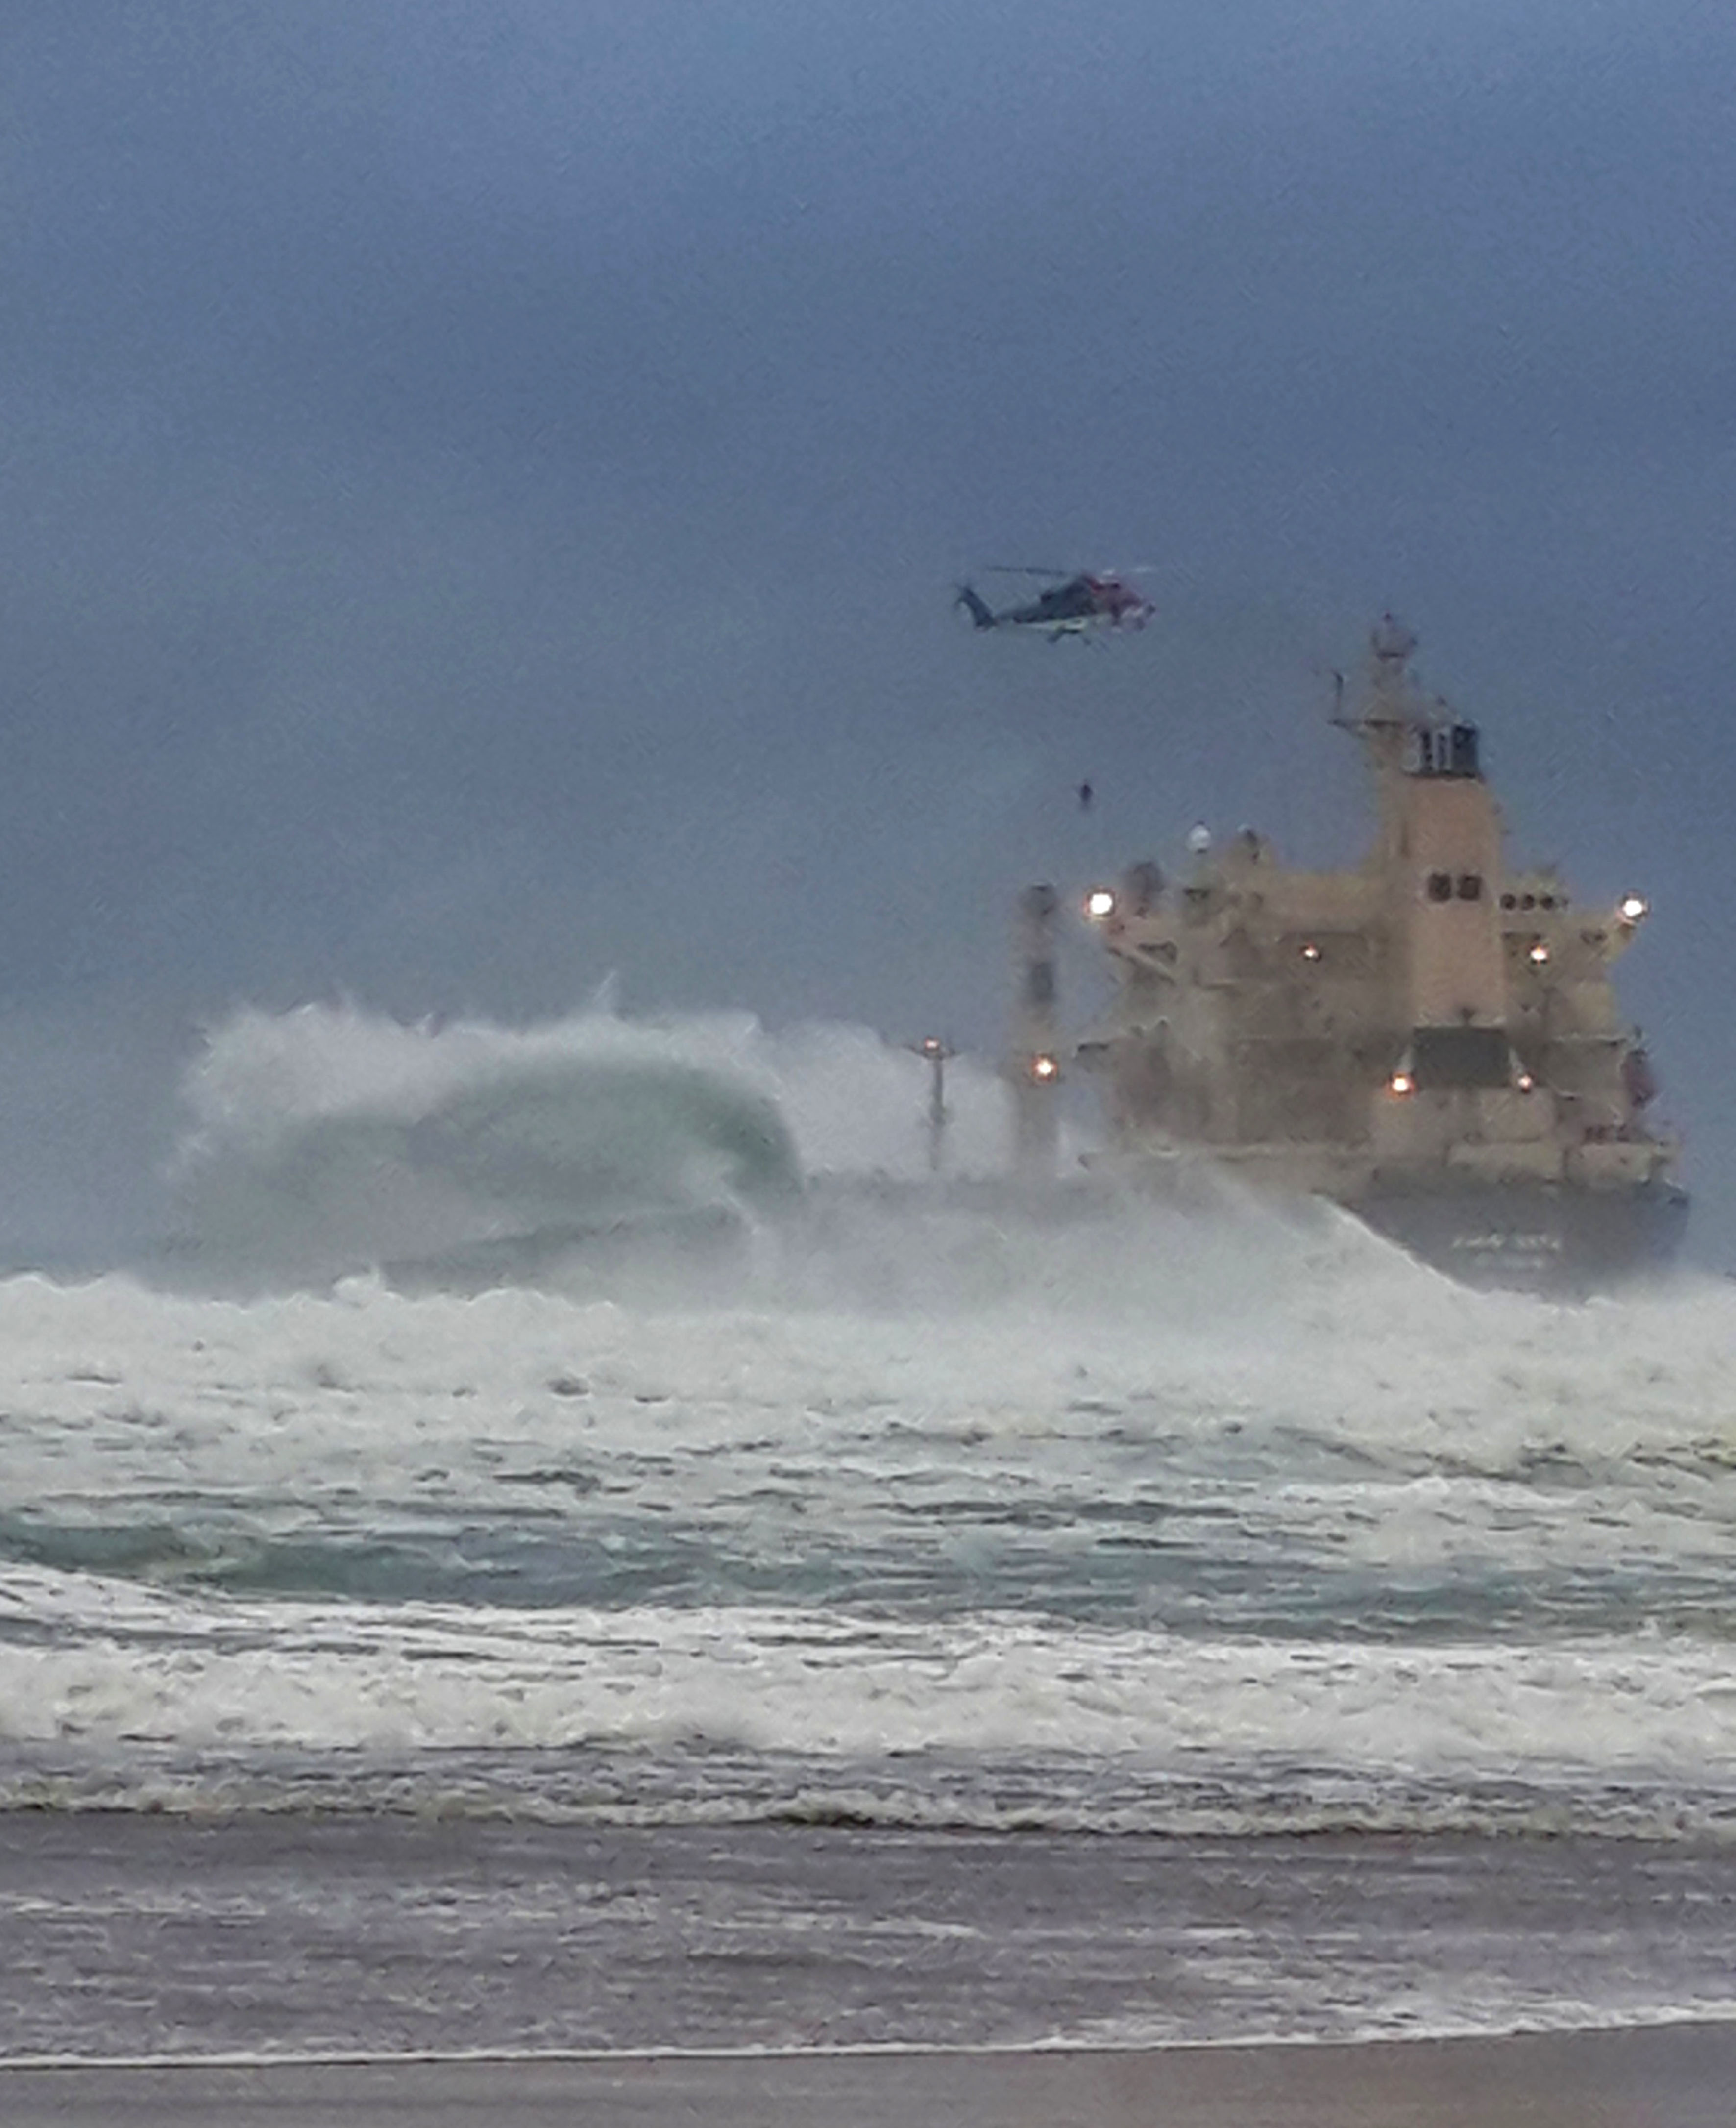 All 19 crew members were safely ashore after being rescued off the ship KIANI SATU. They were airlifted off the ship by a Titan helicopters Sikorski 76 helicopter. Picture Bianca Bezuidenhout, Wilderness NSRI crew.